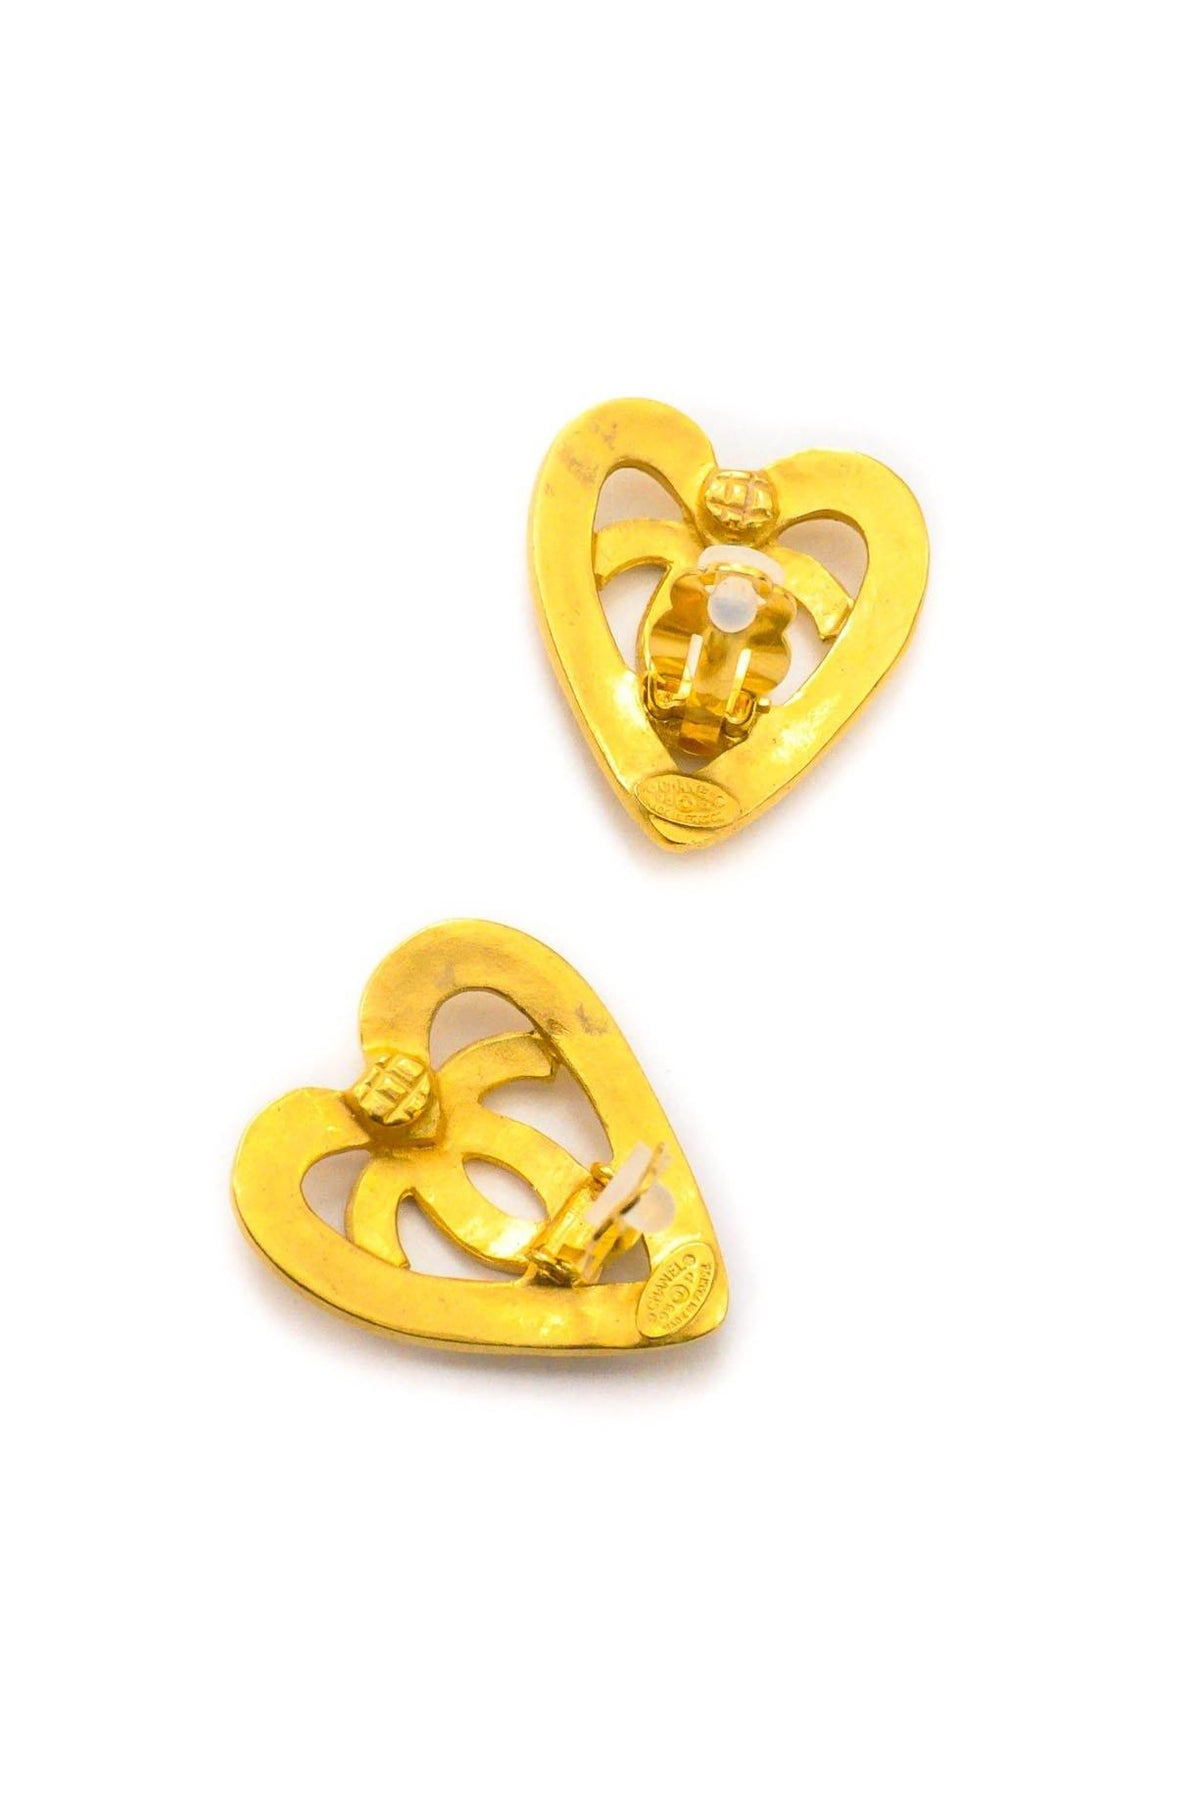 Vintage Chanel  CC Clip-on Earrings from Sweet and Spark